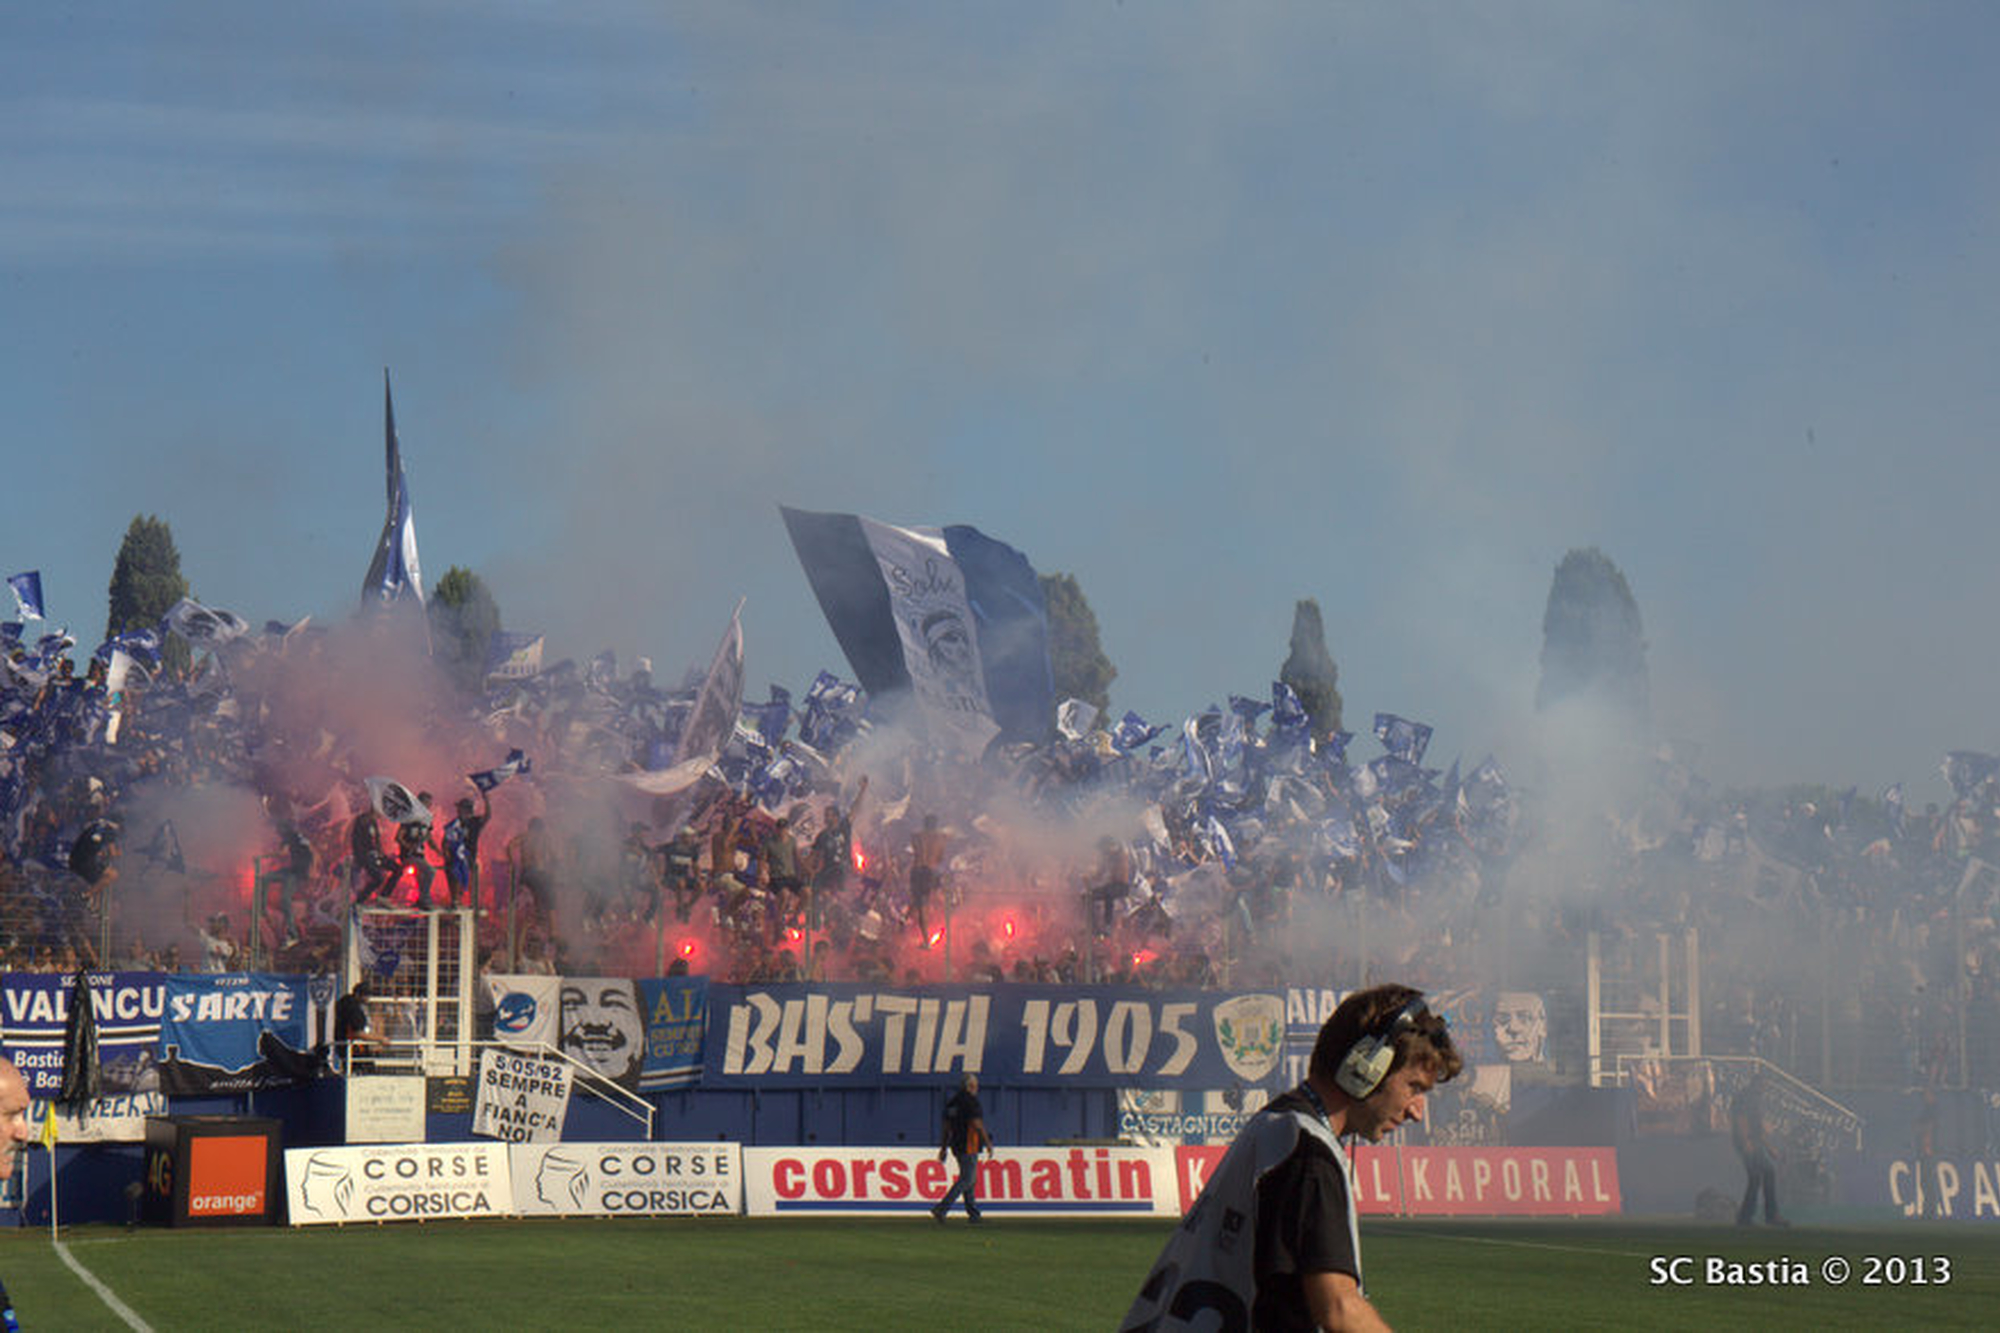 6.scbomsupporters